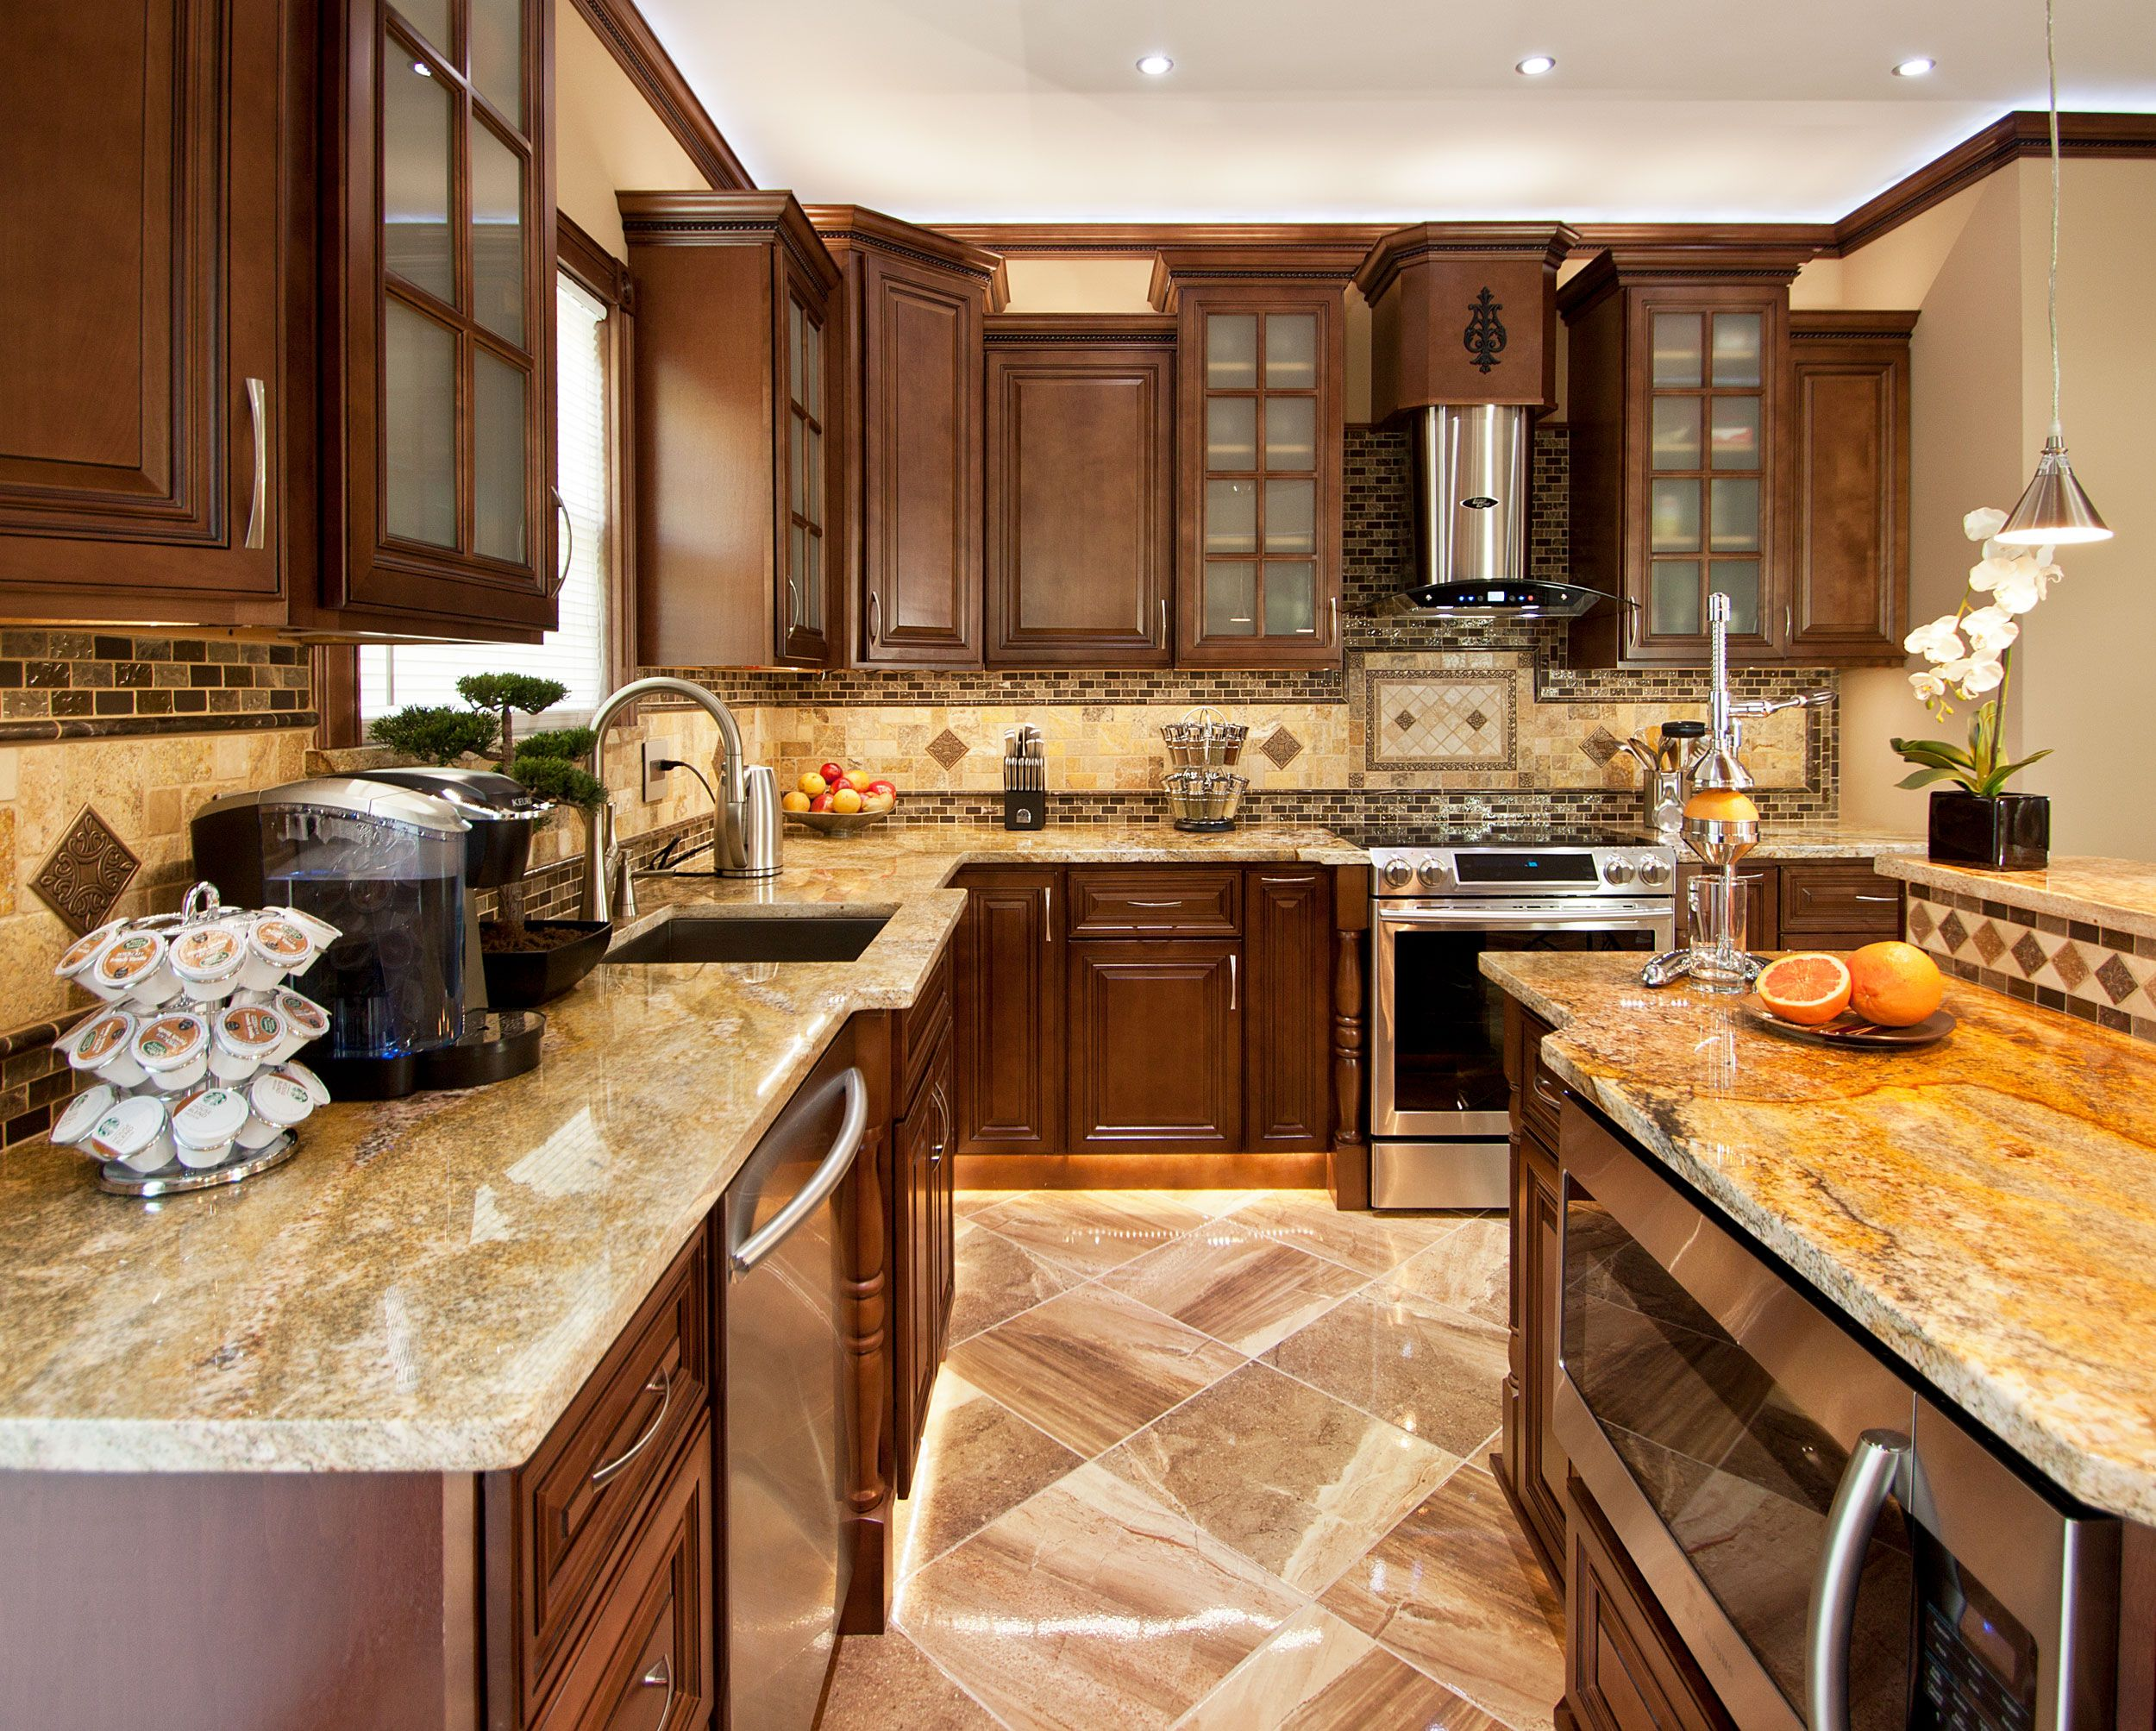 Pin By Aaa Distributor On Featured Products Tuscan Kitchen Solid Wood Kitchen Cabinets New Kitchen Cabinets